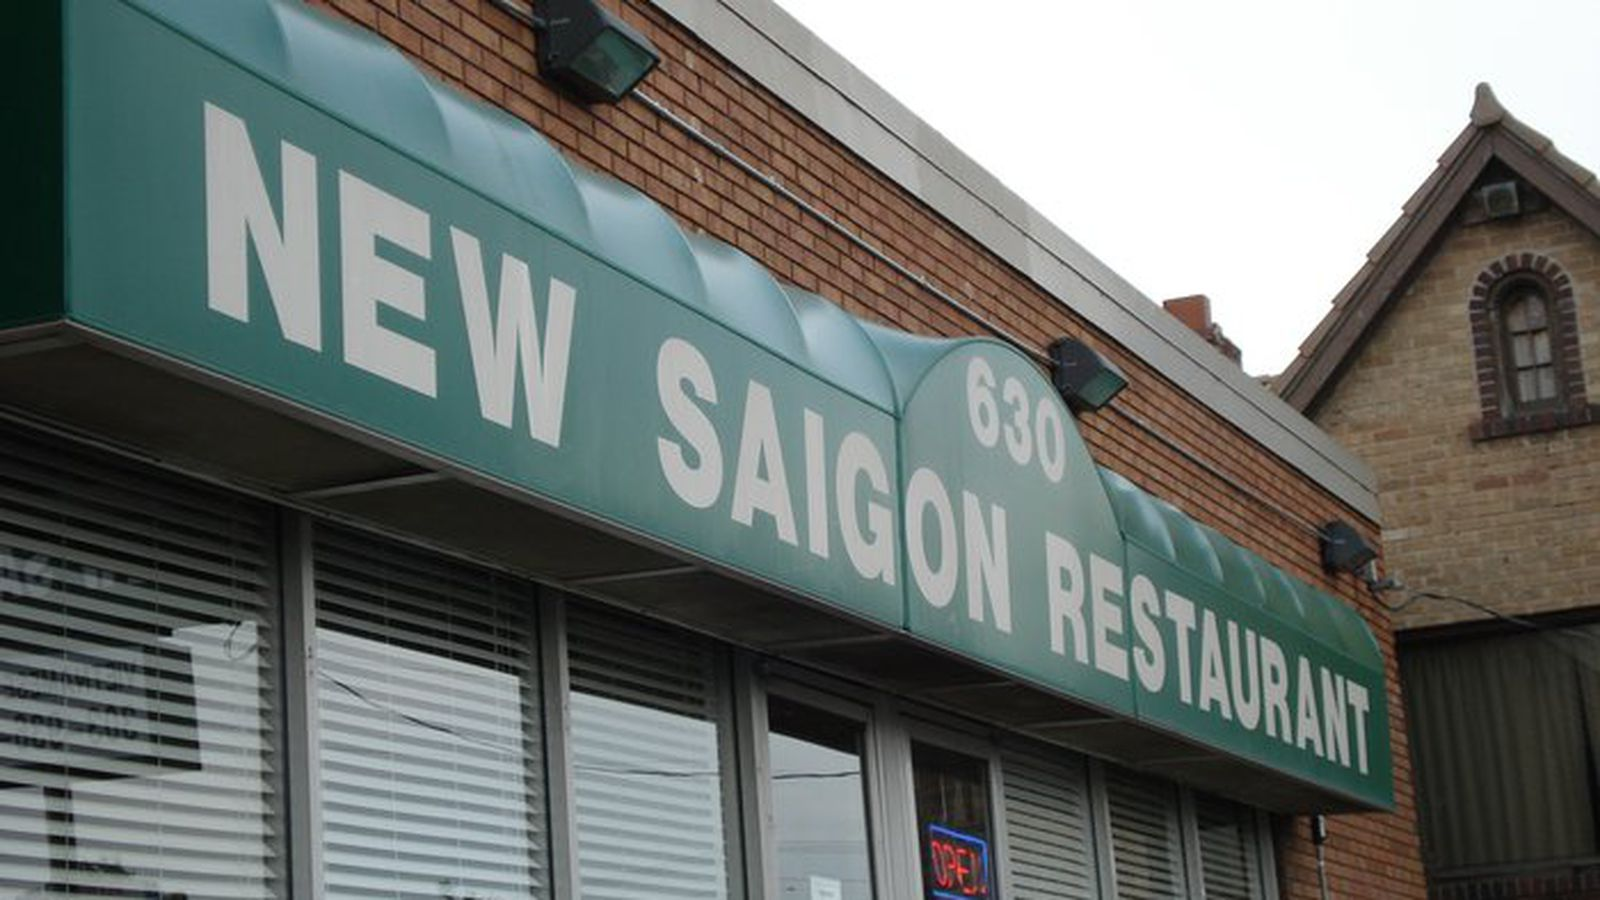 New Saigon Returns to its Roots, Updates Menu and Interior